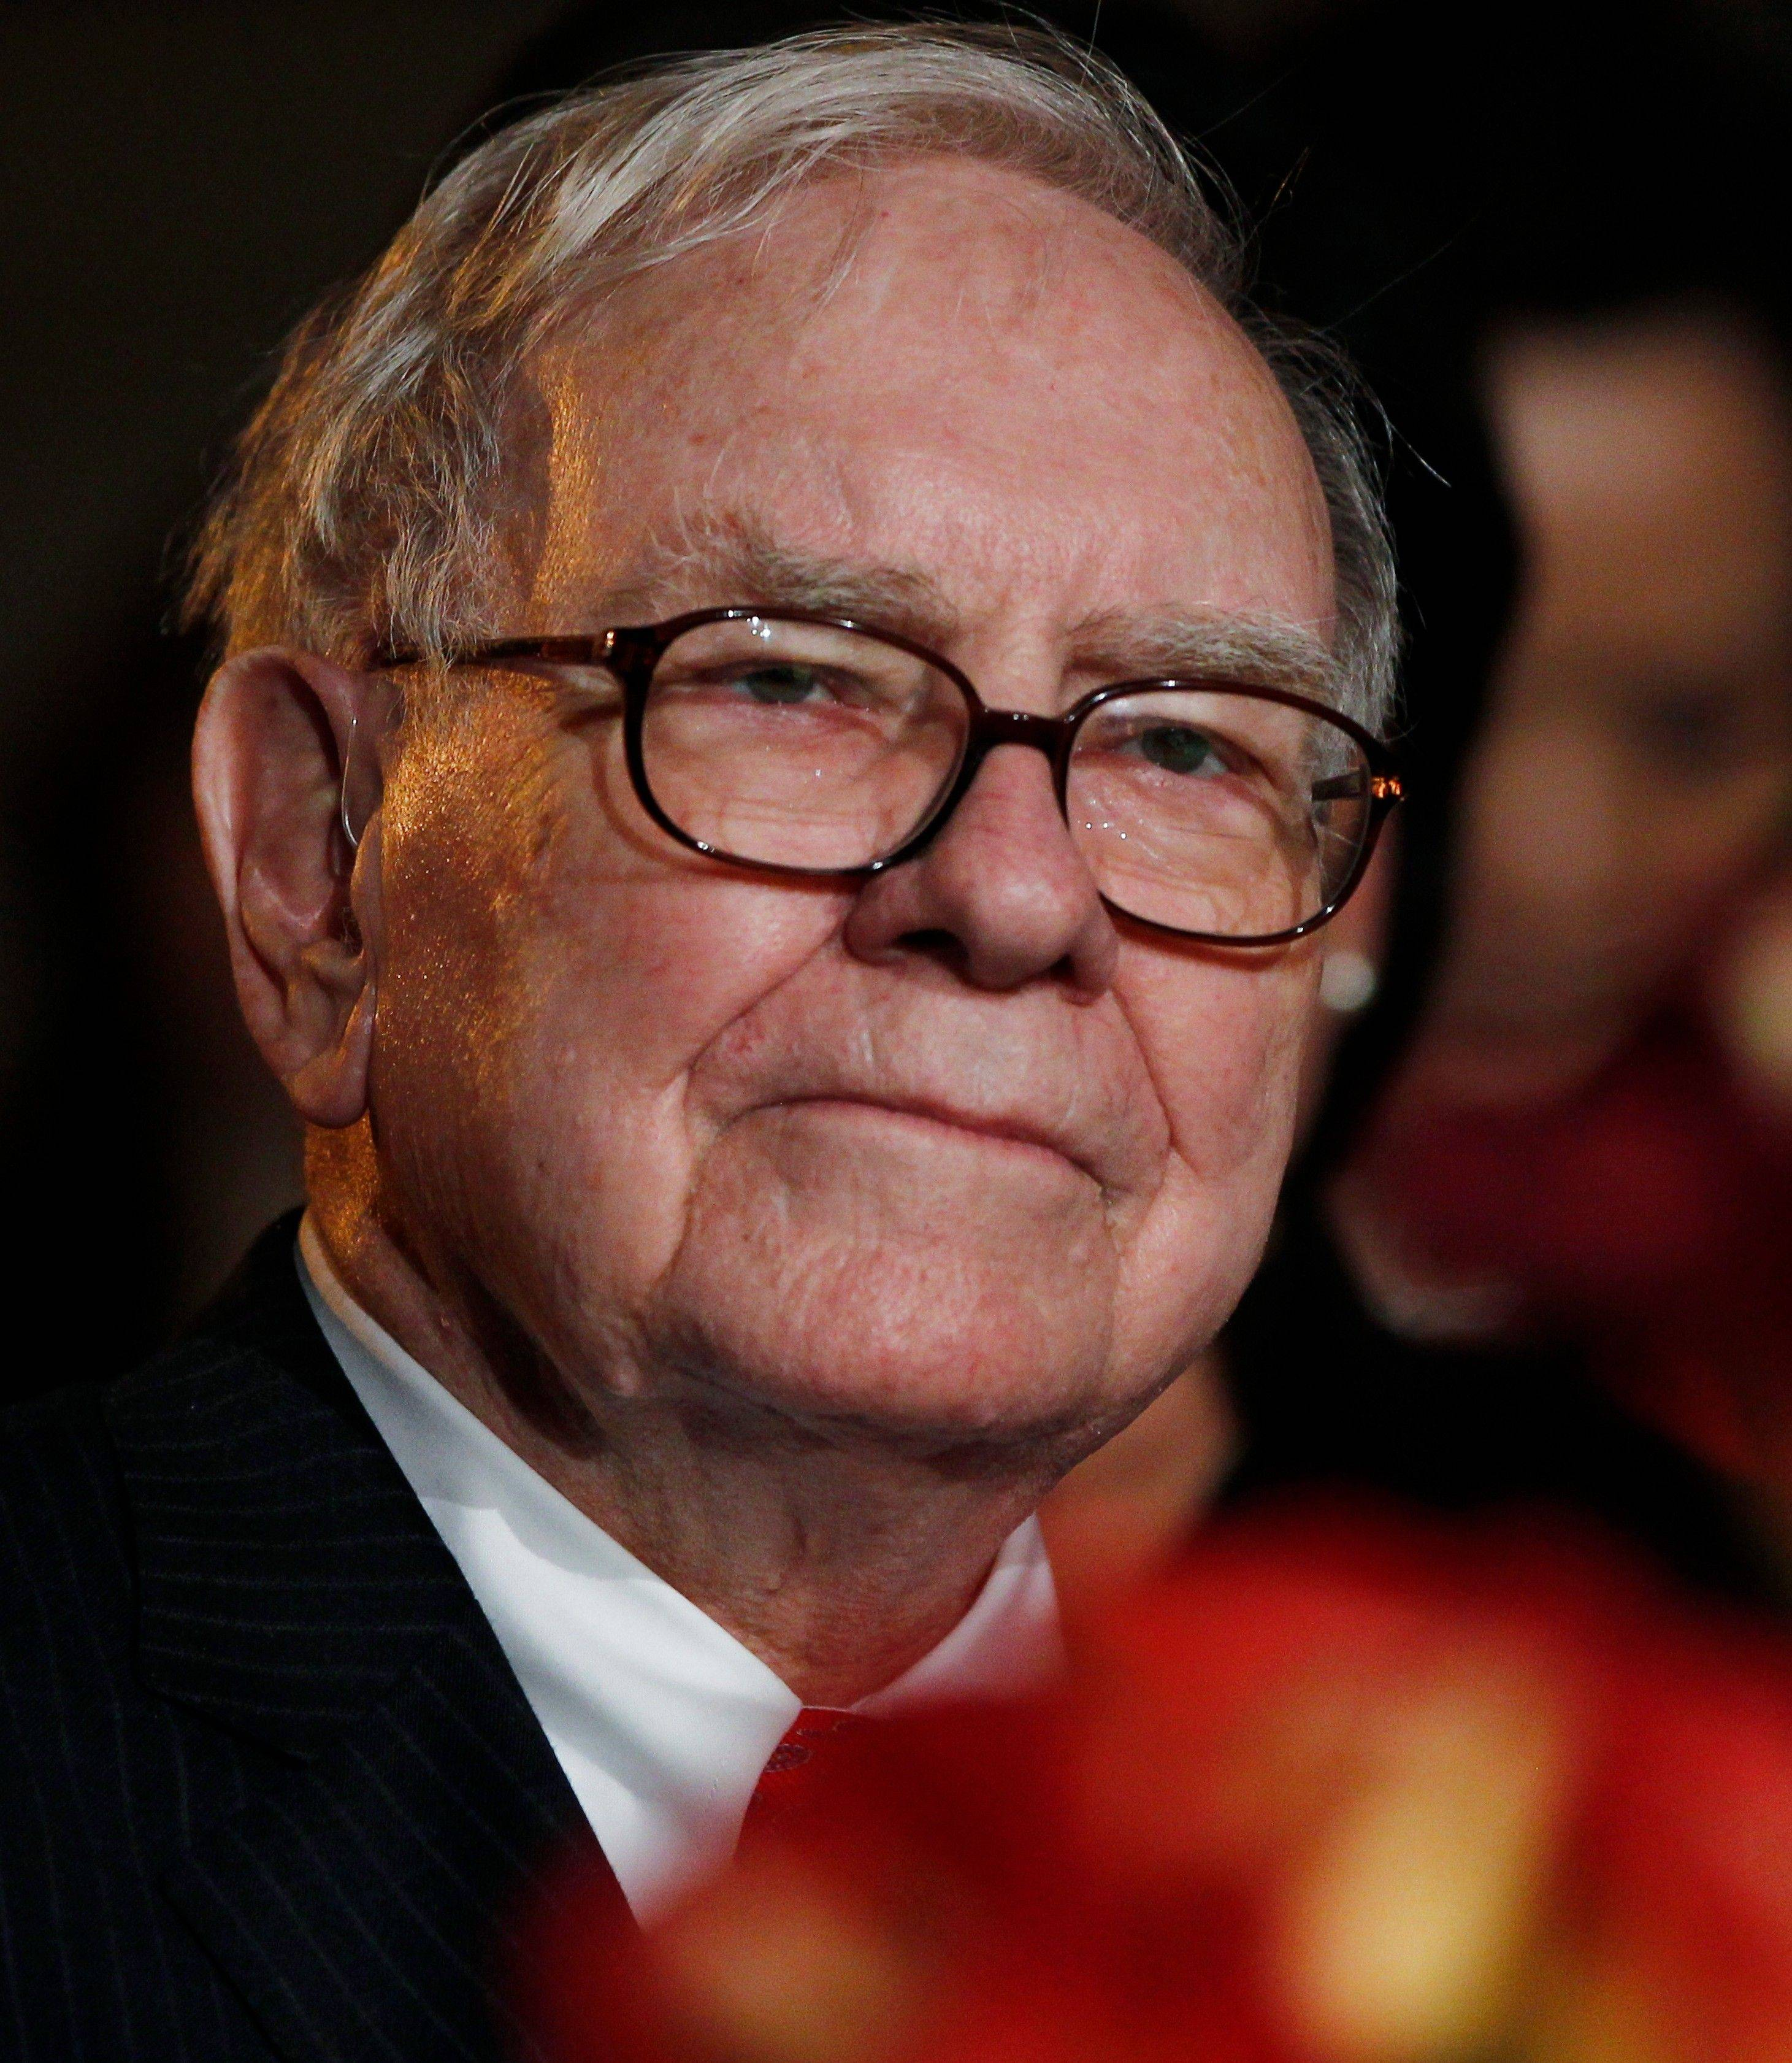 Billionaire Warren Buffett plans to hold a Sept. 30 fundraiser in New York City to benefit President Barack Obama's re-election bid,